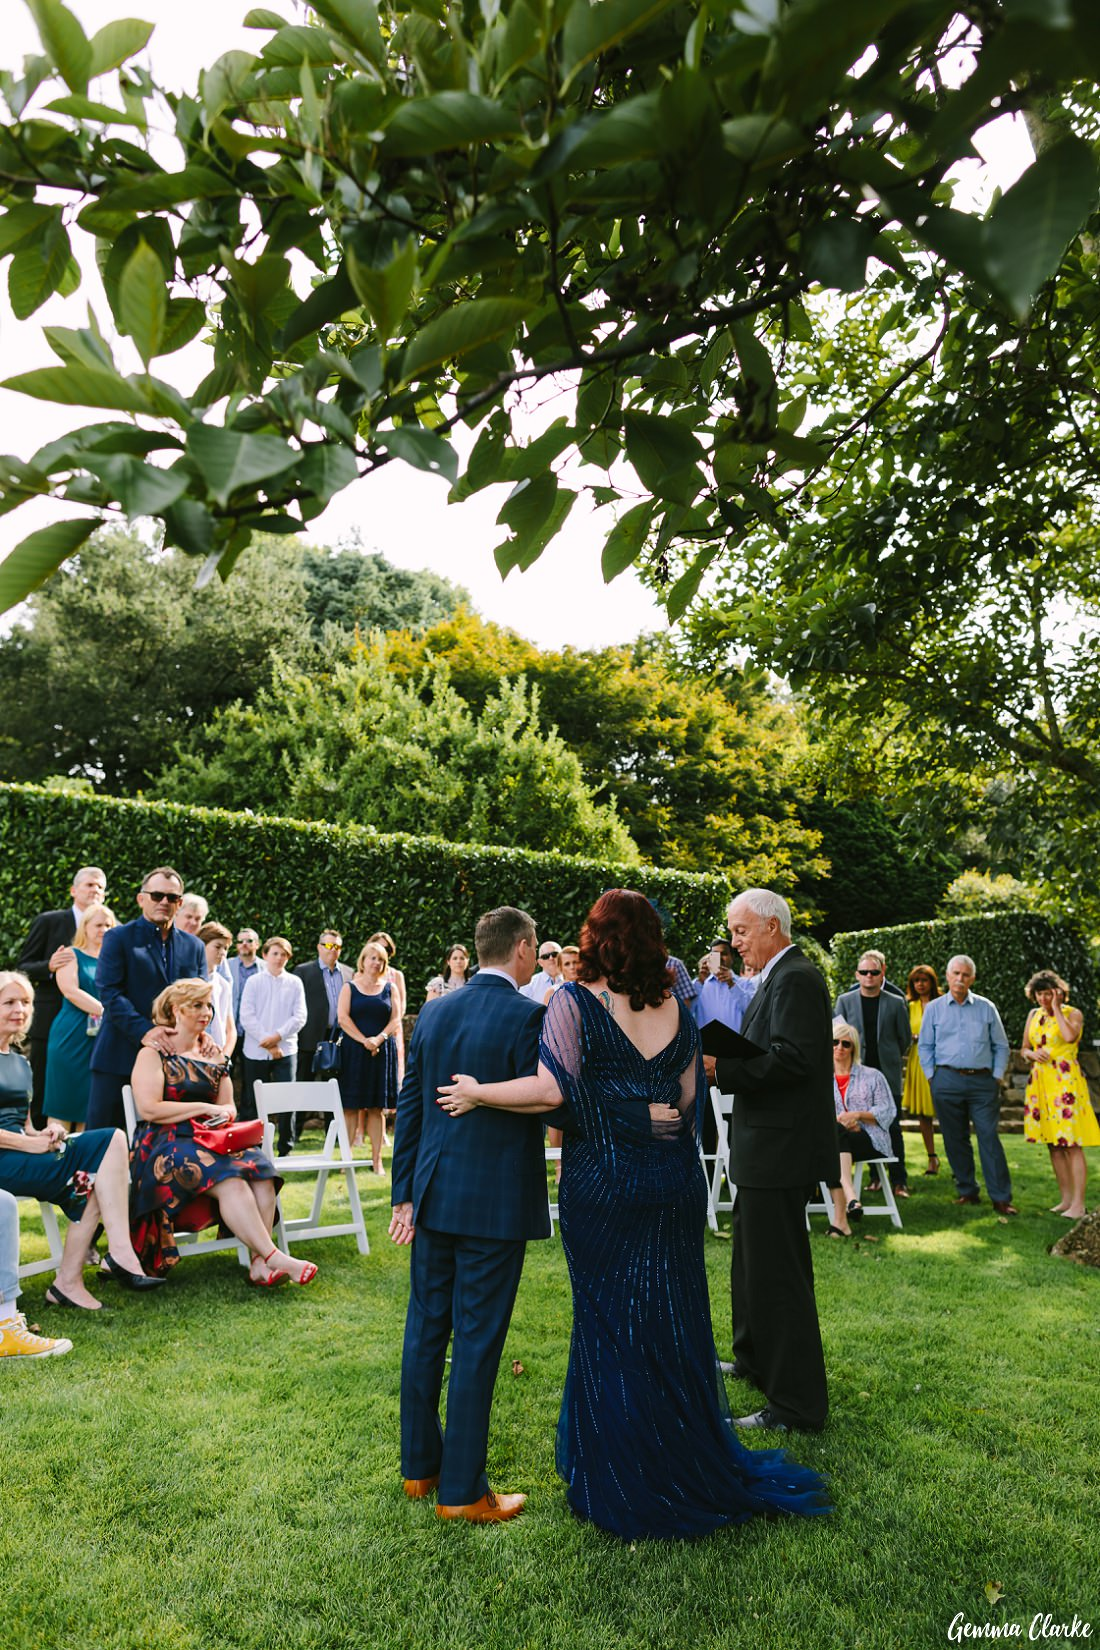 Under a big beautiful tree and amongst the hedges the guests enjoy this heartfelt ceremony at this Mount Tomah Botanic Gardens Wedding.